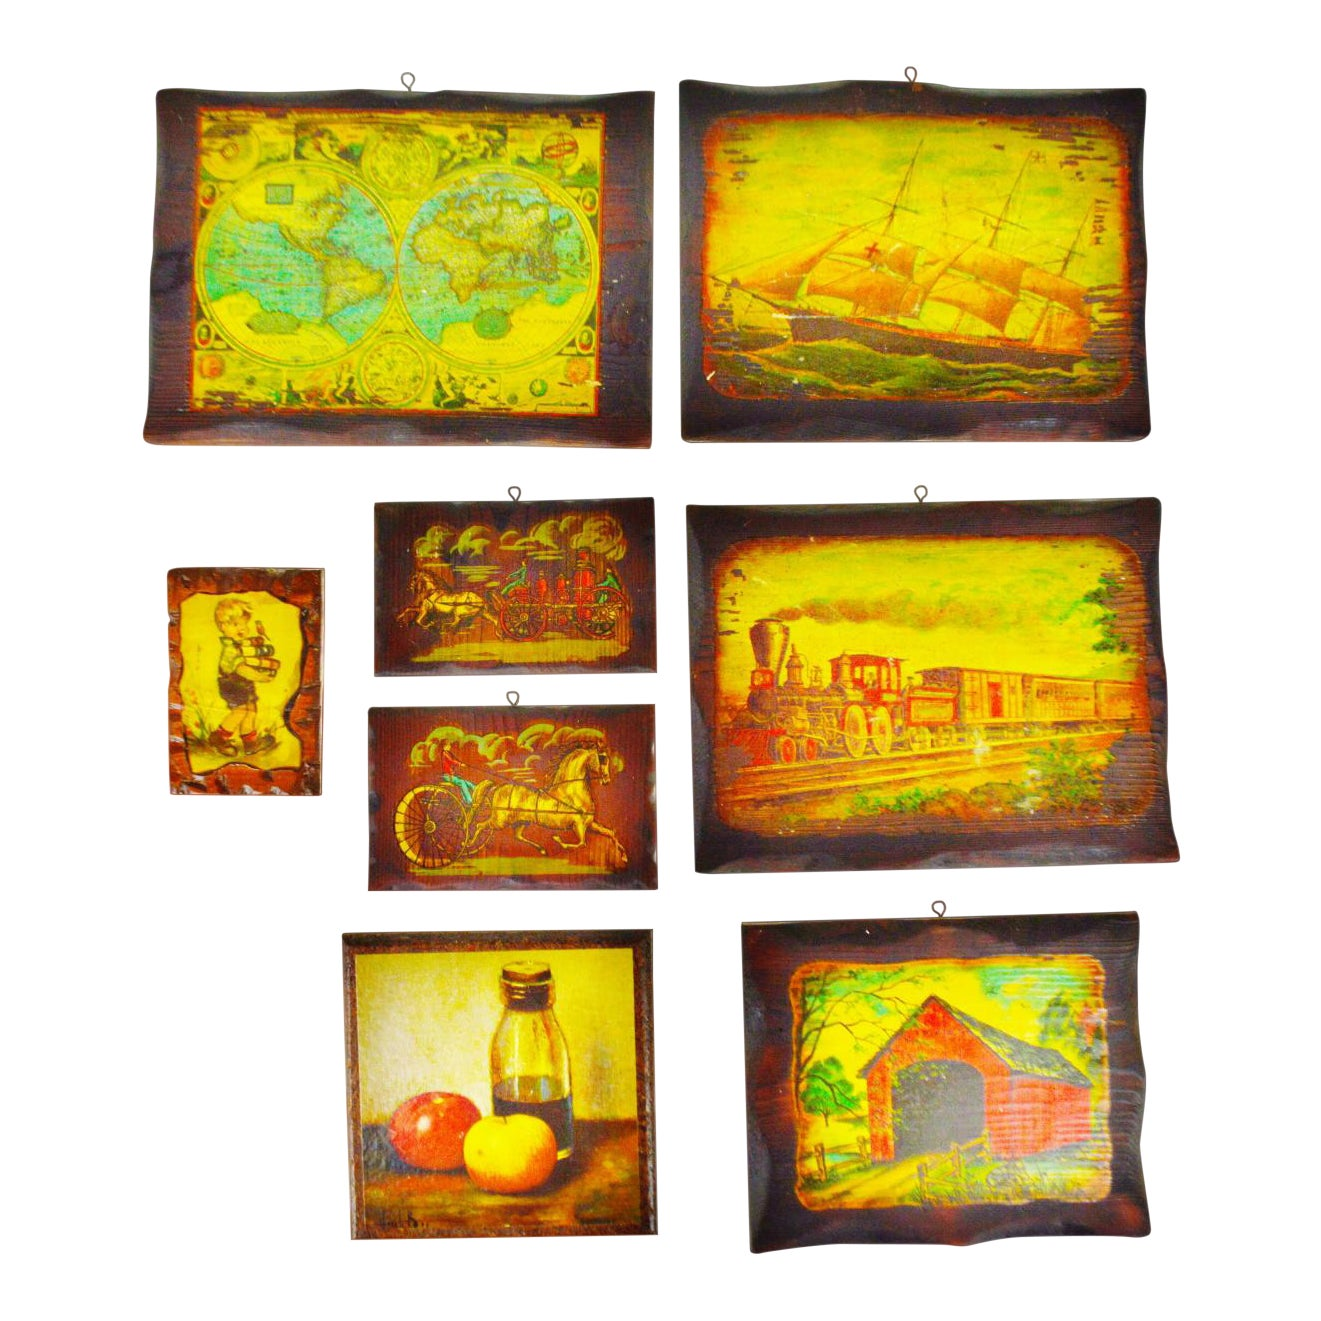 Vintage Carved Wood Decoupage Wall Art Plaques - Group of 8 | Chairish